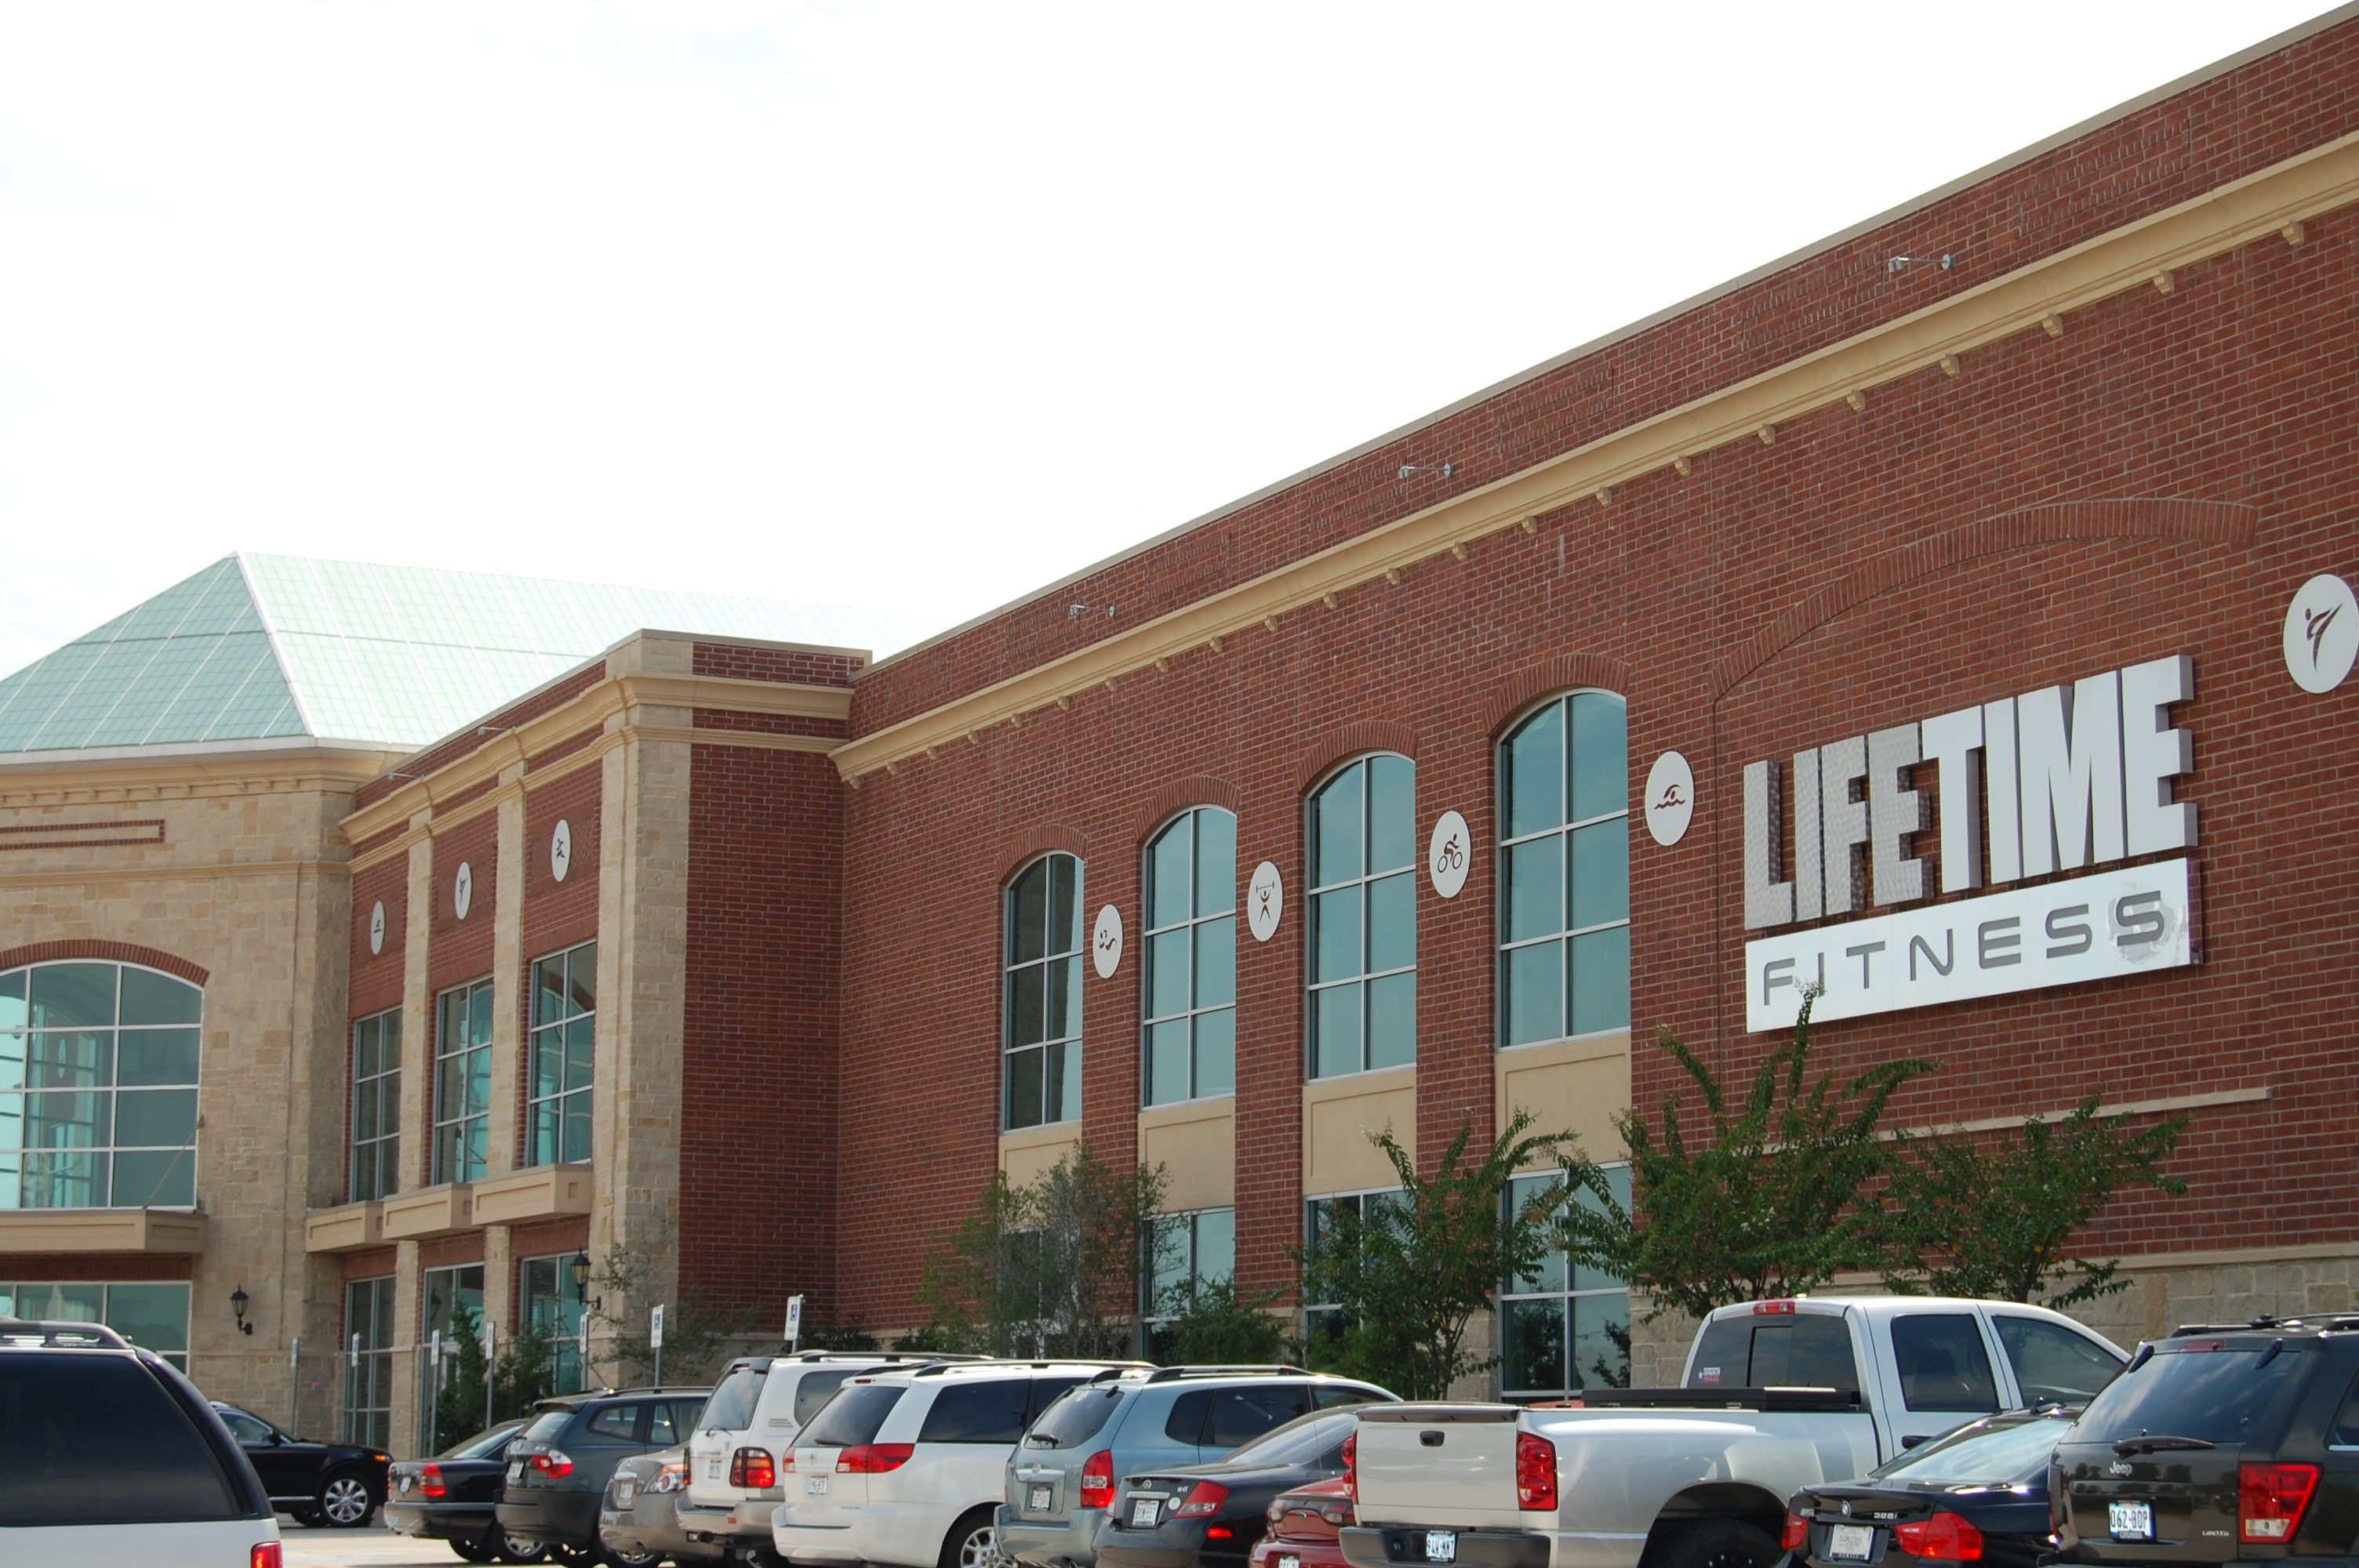 The Best 10 Fitness Centres In Fort Worth, TX - My Fitness ...